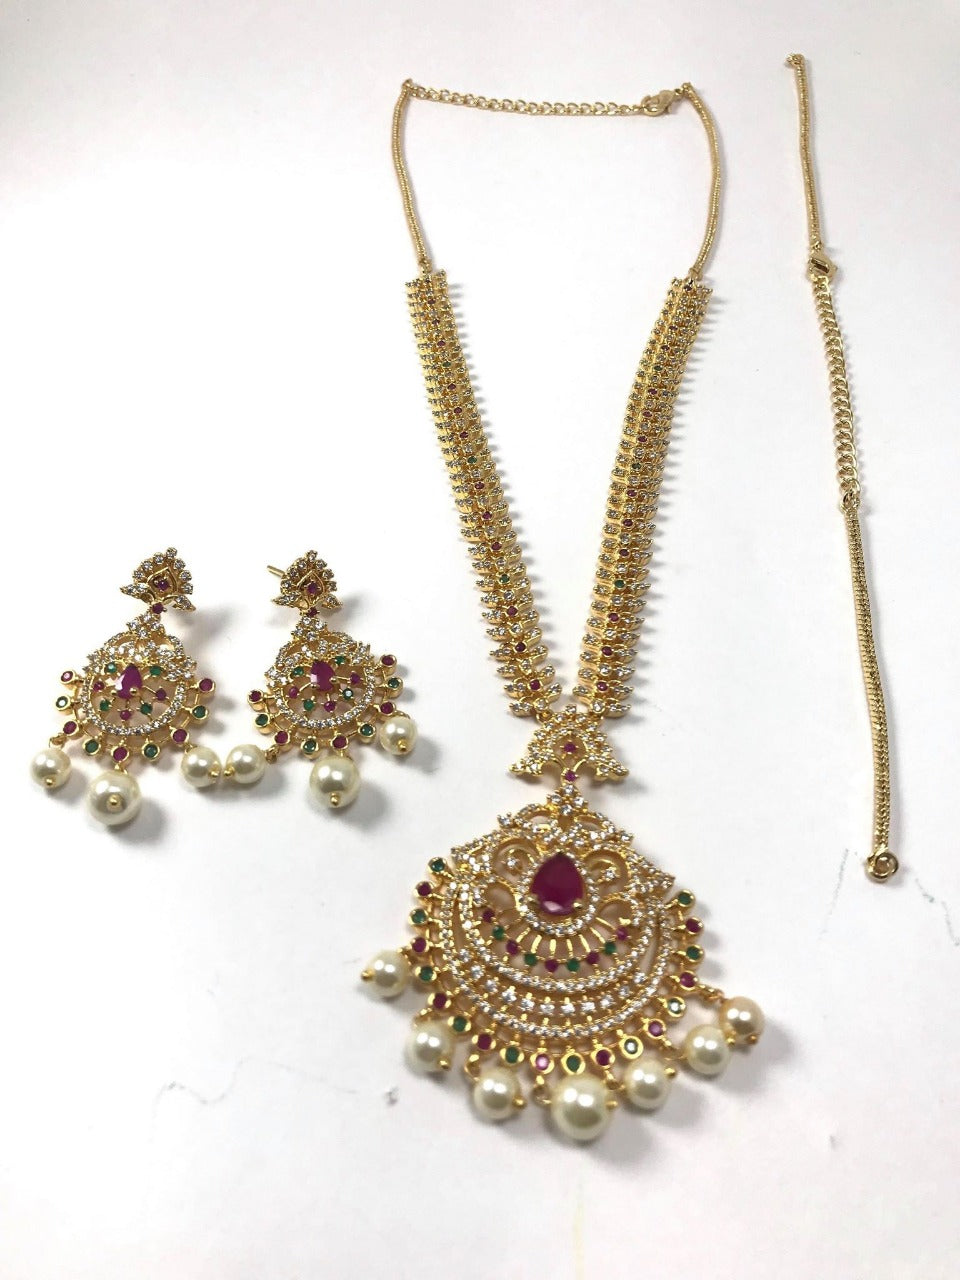 Gold Plated Enchanted Necklace Set with Pink & Green Stones With Matching Earrings